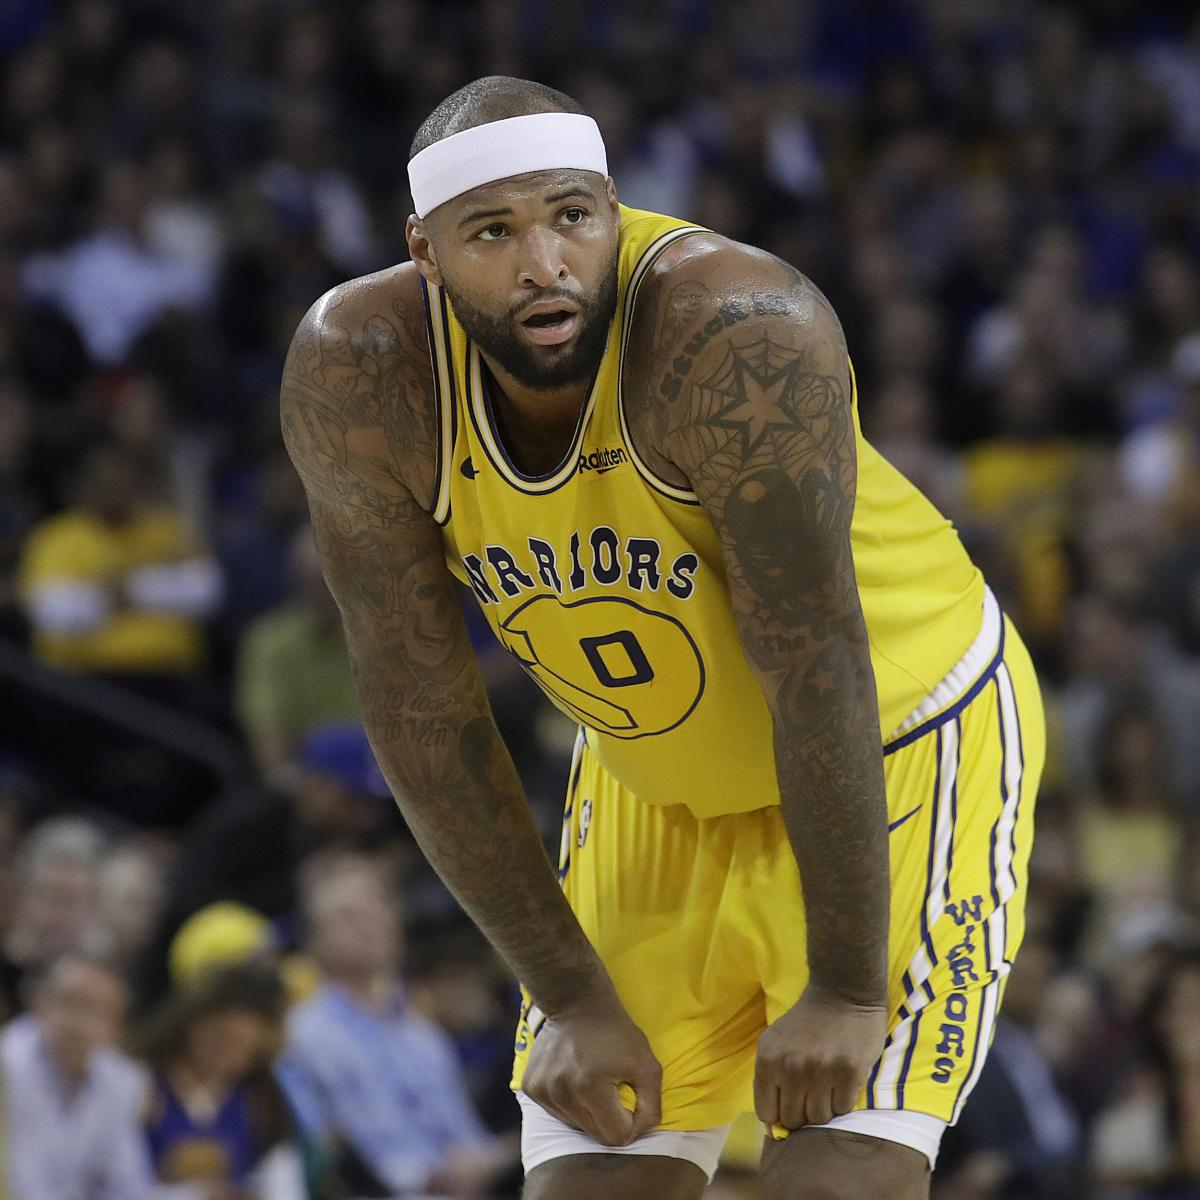 DeMarcus Cousins Says He Played Through Injury for Warriors in 2019 NBA Playoffs